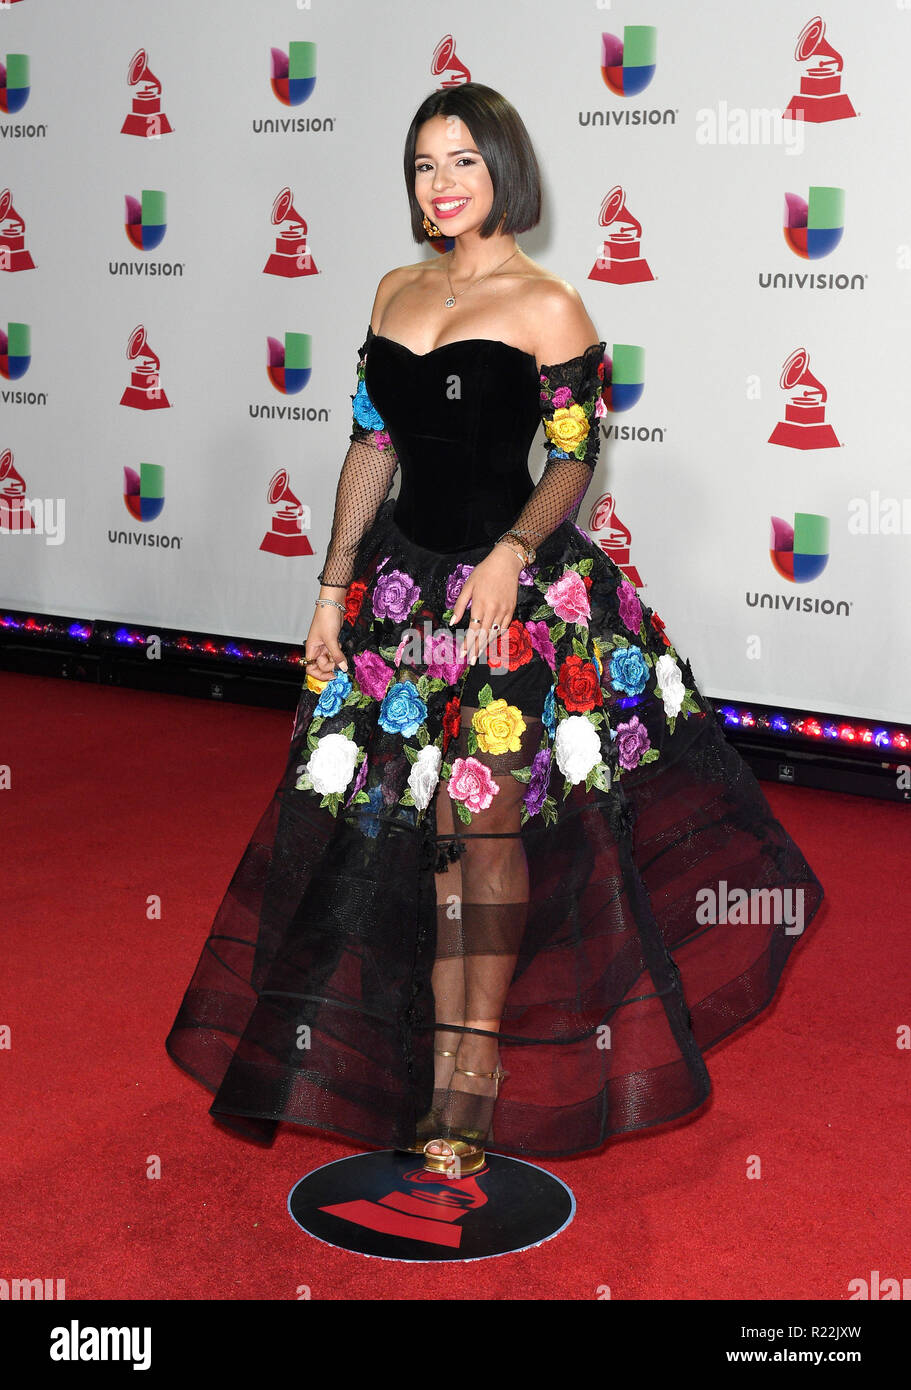 Las Vegas, NV, USA. 15th Nov, 2018. Angela Aguilar at the 19th Annual Latin GRAMMY Awards on November 15, 2018 at the MGM Grand Garden Arena in Las Vegas, Nevada. Credit: Damairs Carter/Media Punch/Alamy Live News - Stock Image